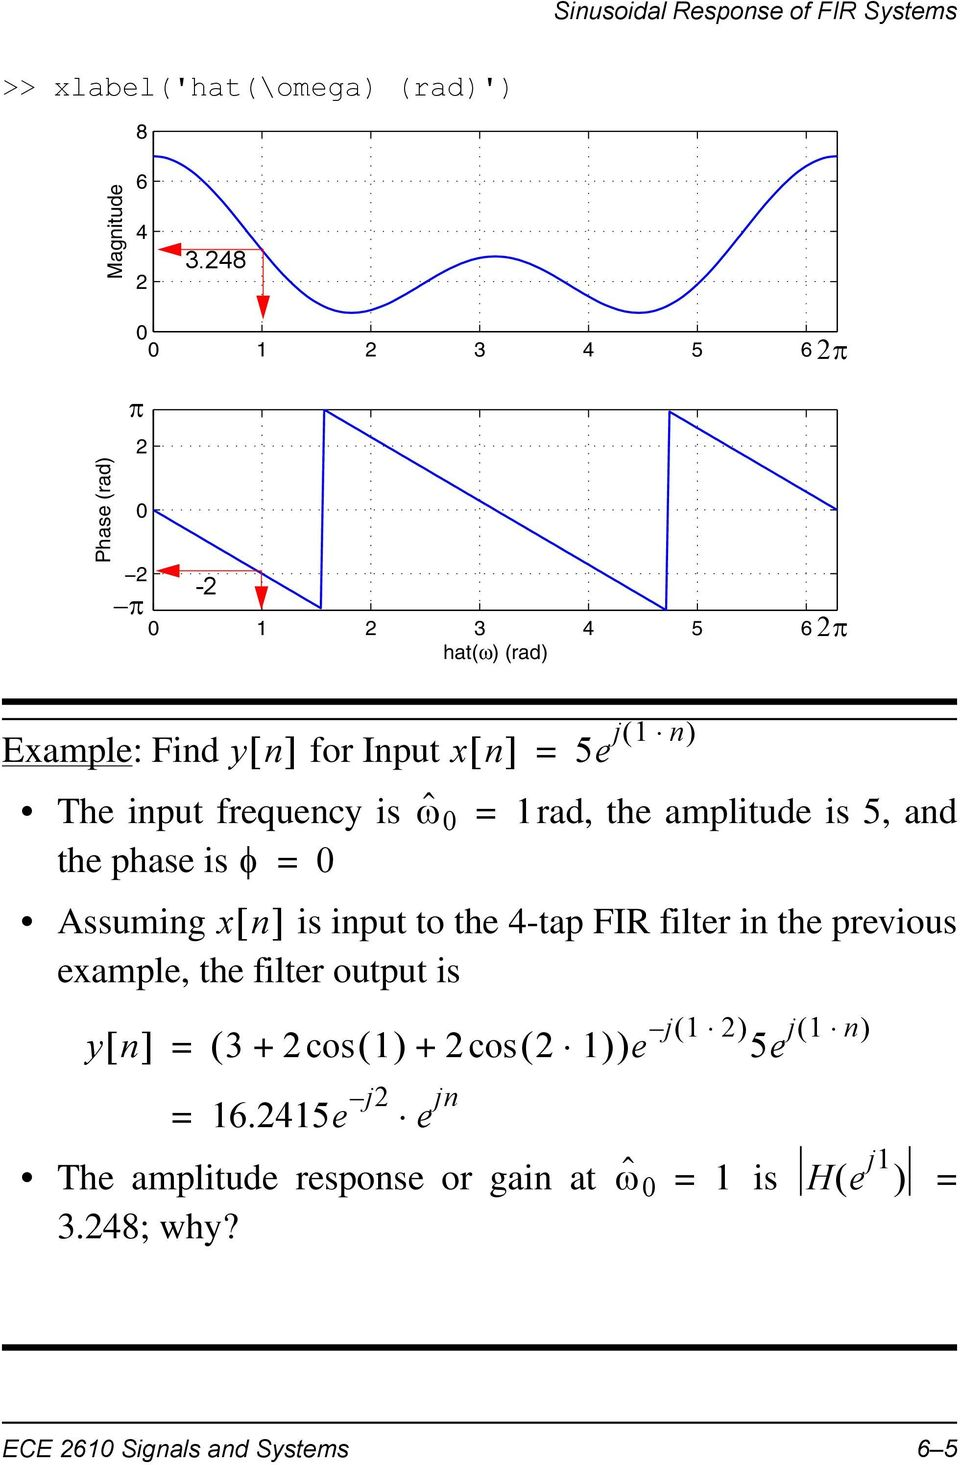 5e j1 n ˆ 1 rad, the amplitude is 5, and Assuming xn is input to the 4-tap FIR filter in the previous example, the